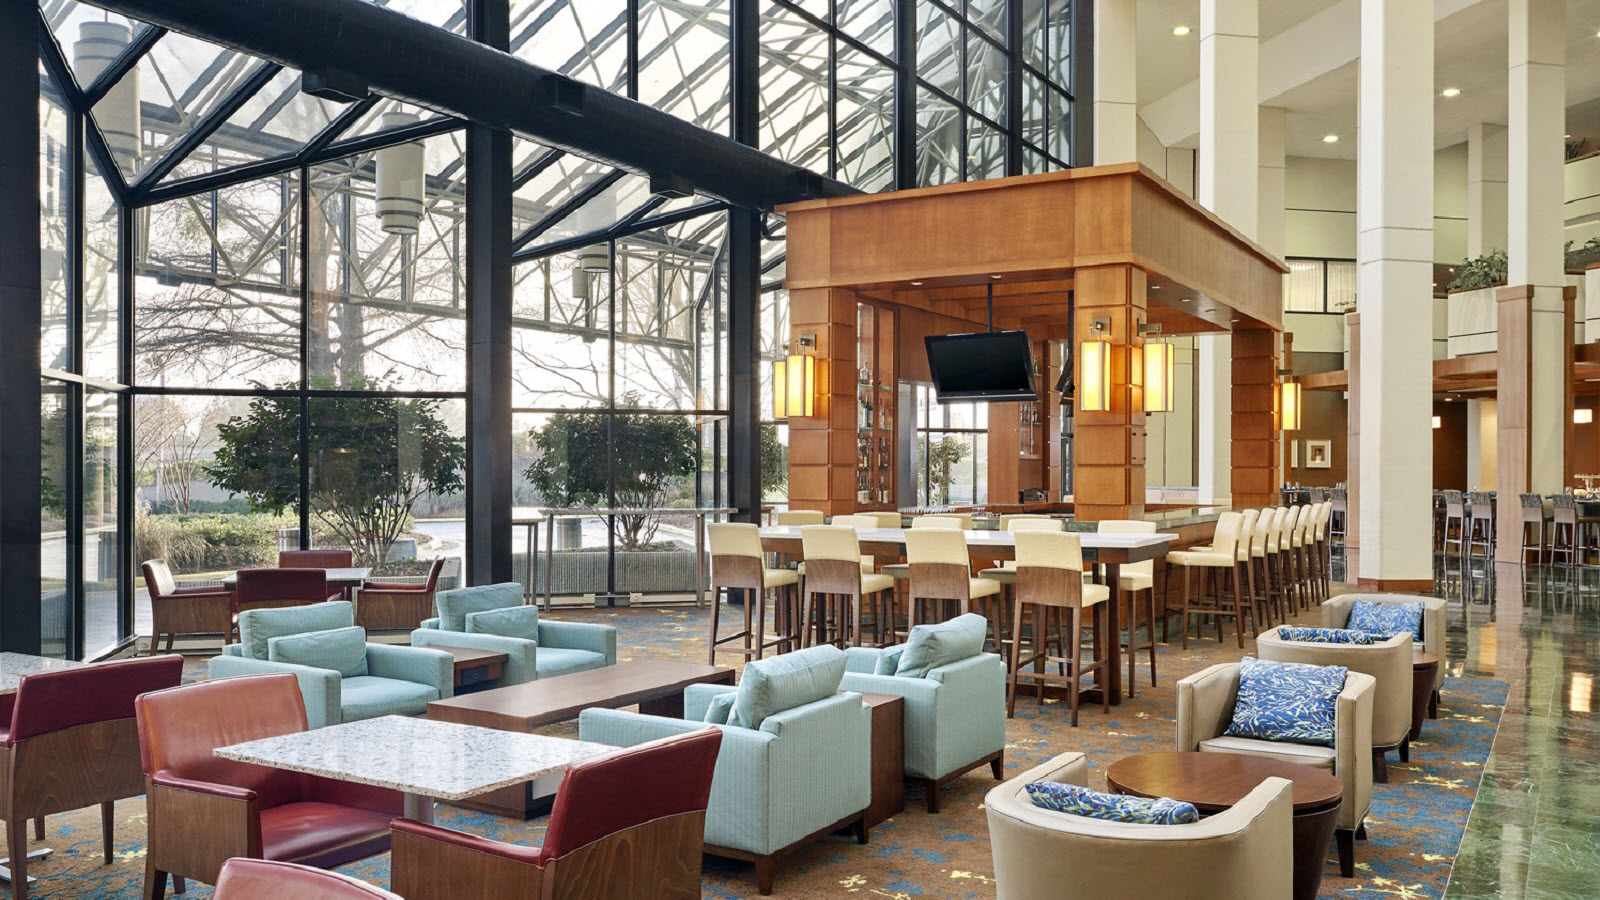 https://www.hotelsbyday.com/_data/default-hotel_image/0/1163/the-westin-atlanta-airport-lobby-martinis-lounge.jpg